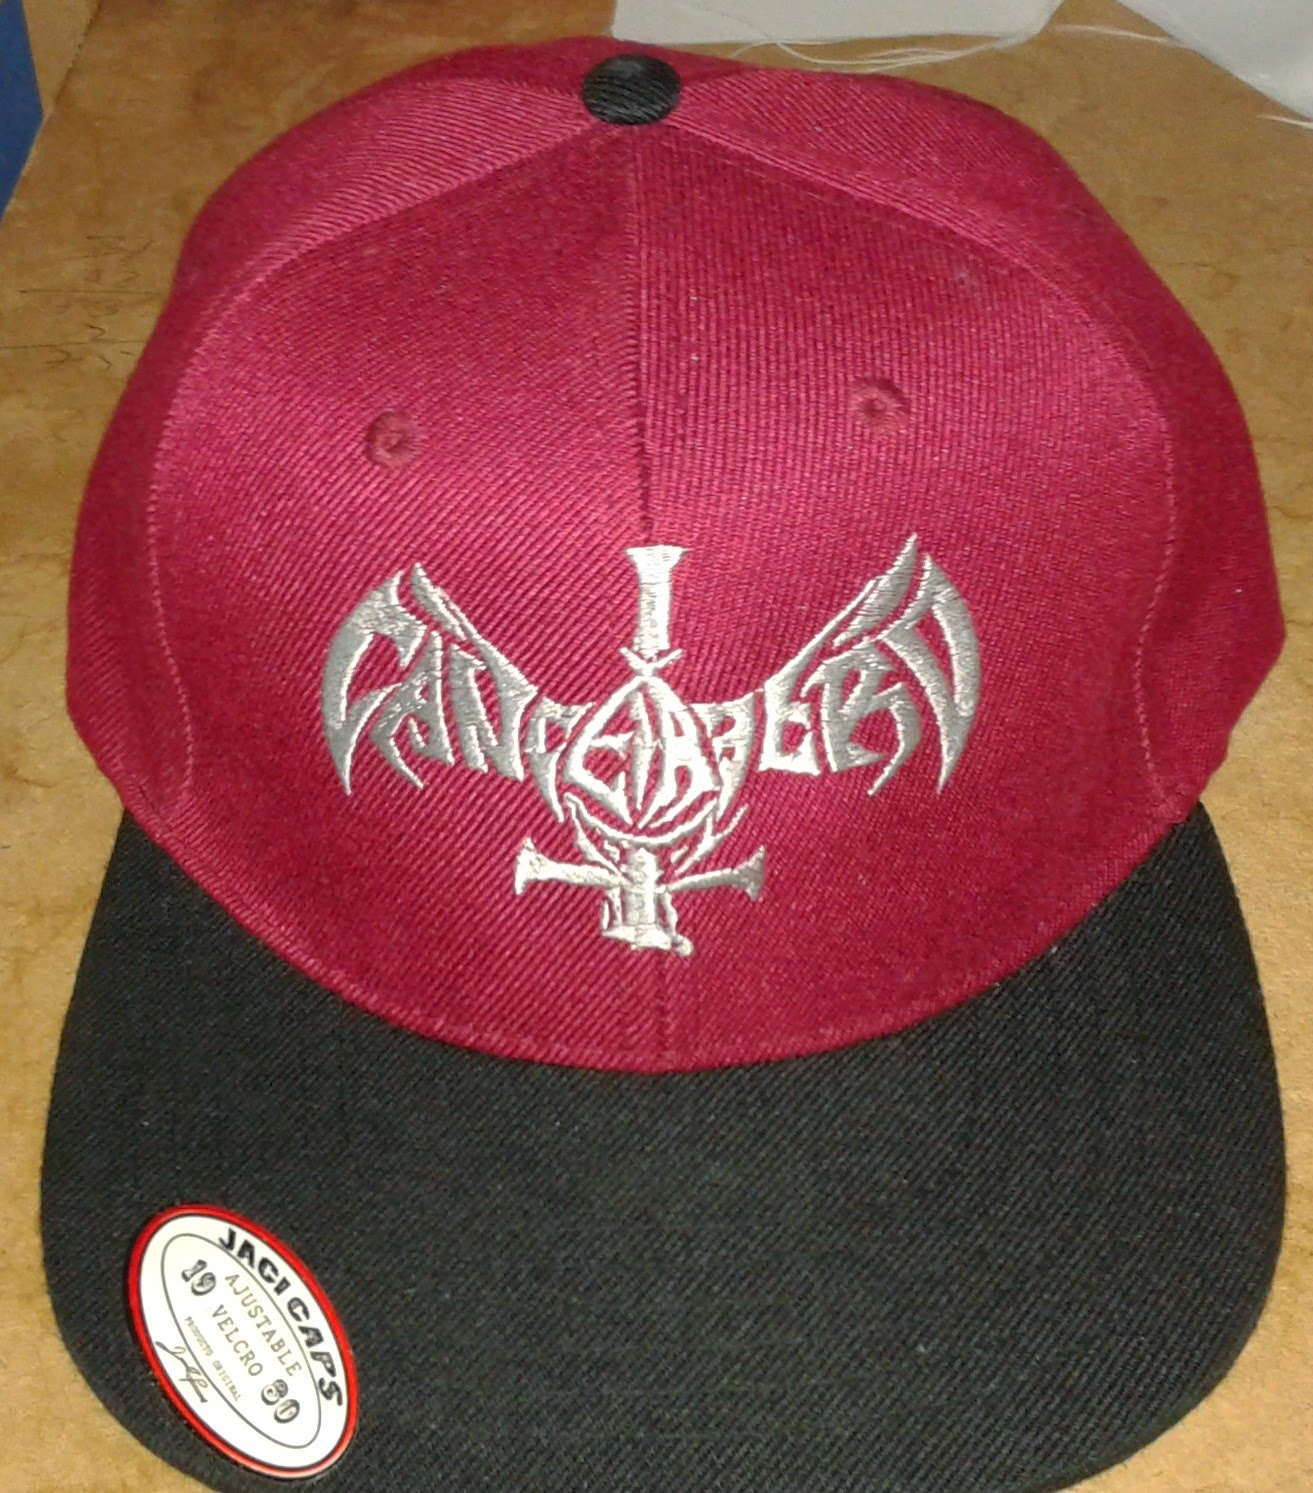 Cancerbero bordado en gorra